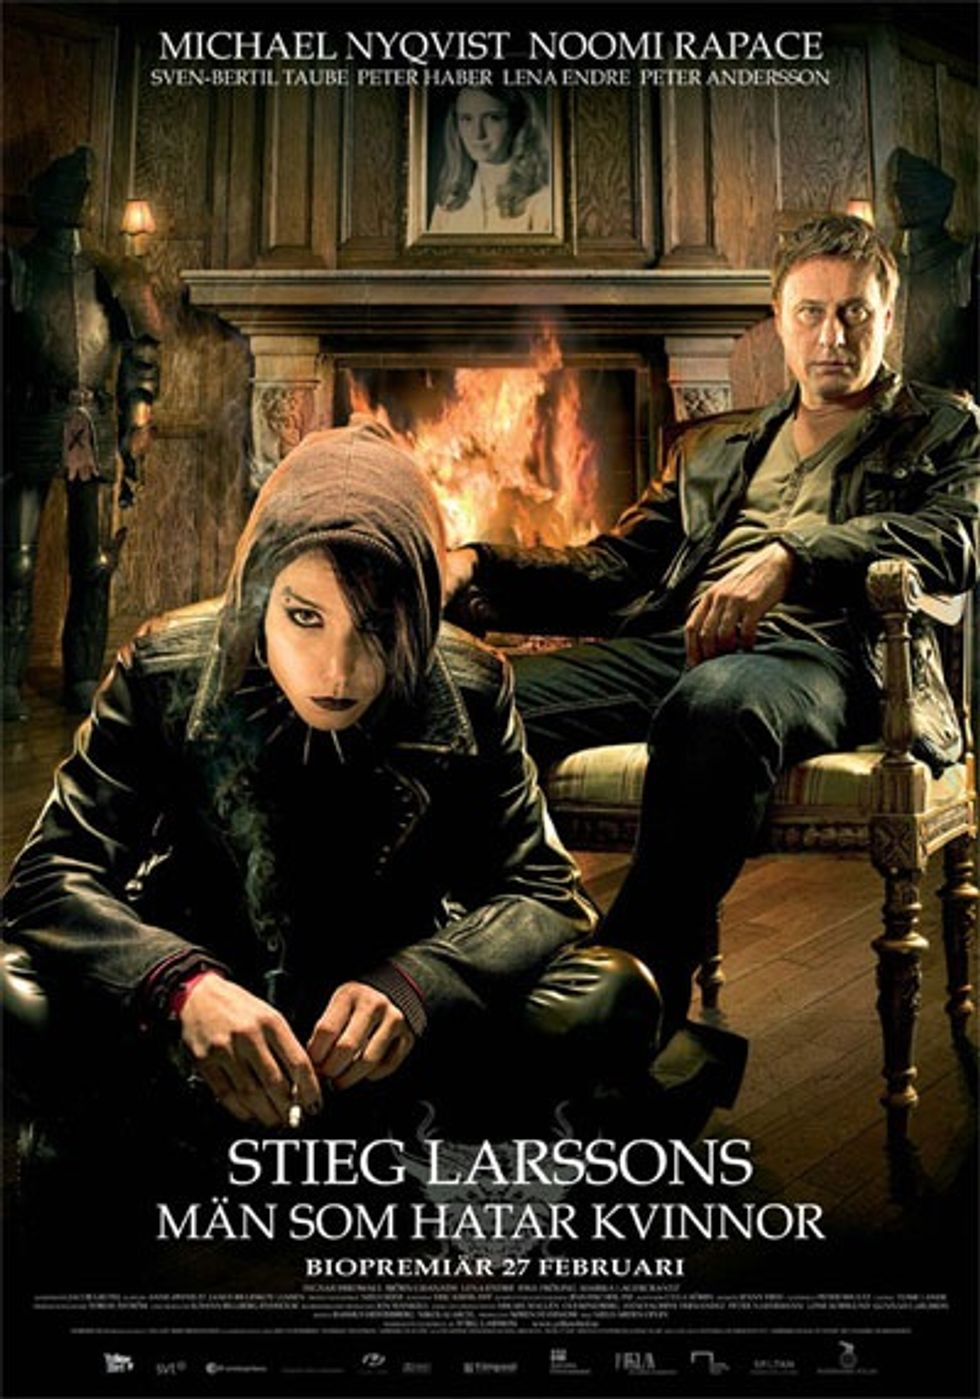 The Girl With The Dragon Tattoo Opens!